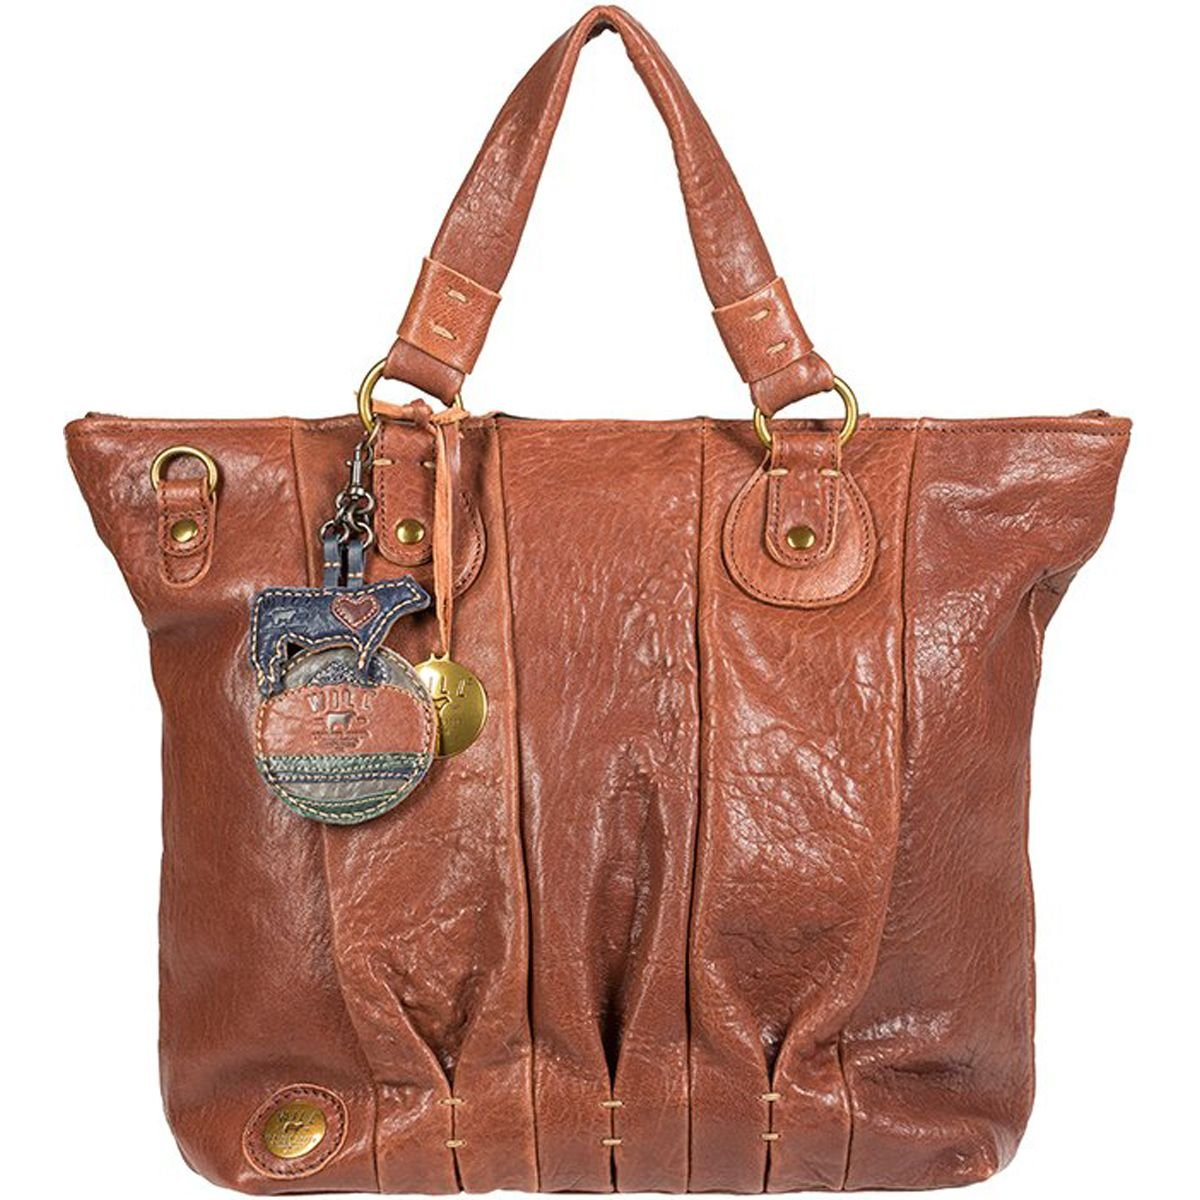 Will Leather Goods Her Top Zip Satchel - Women's Cognac, One Size